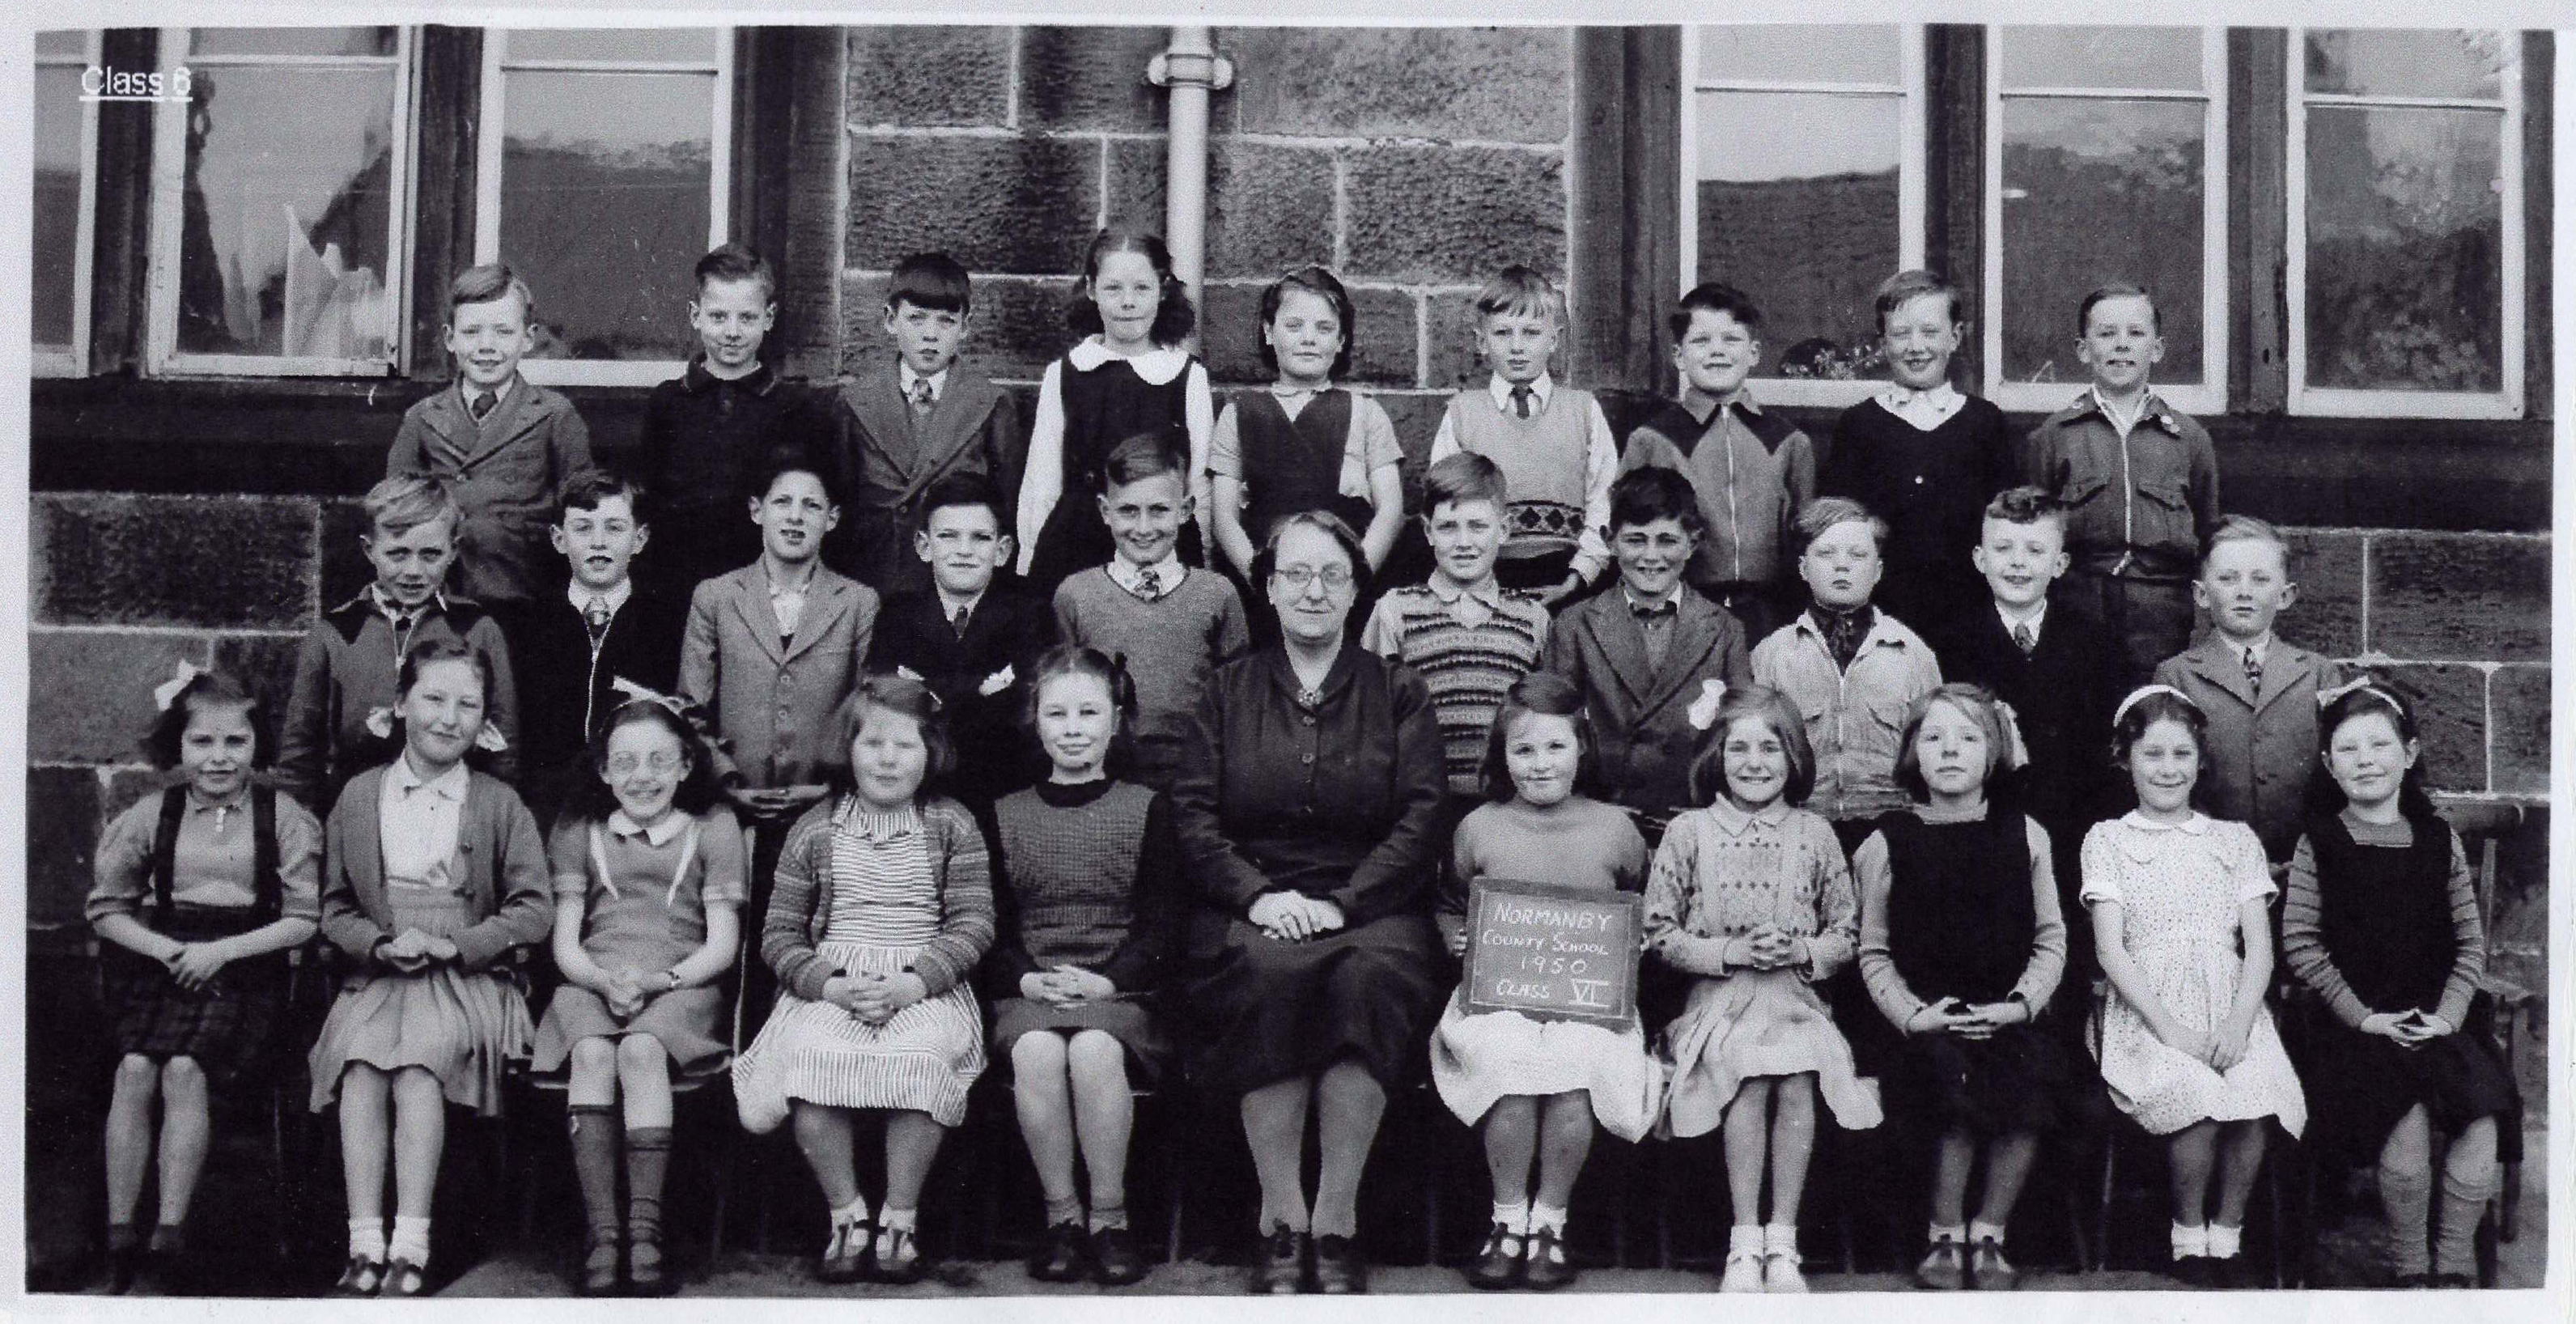 Normanby School Photo Class - 1950-class6